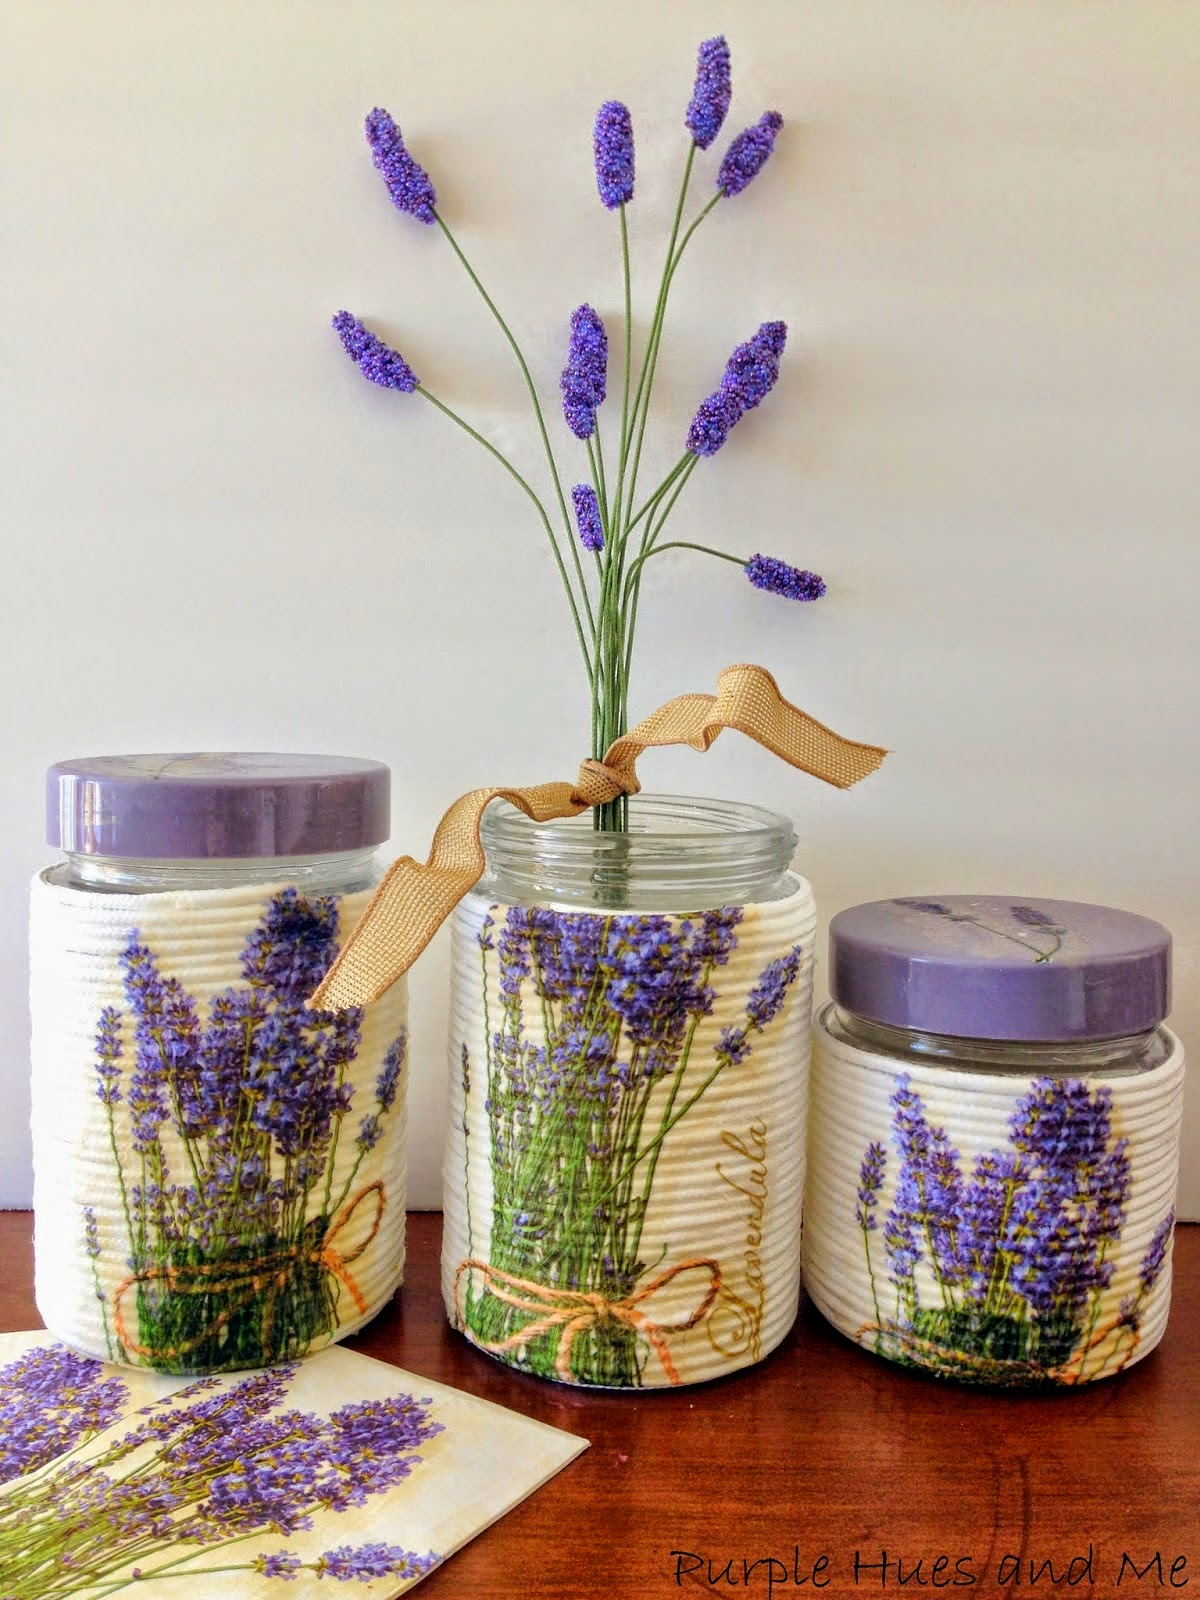 http://plumperfectandme.blogspot.com/2014/10/faux-lavender-seed-bead-flowers-diy.html